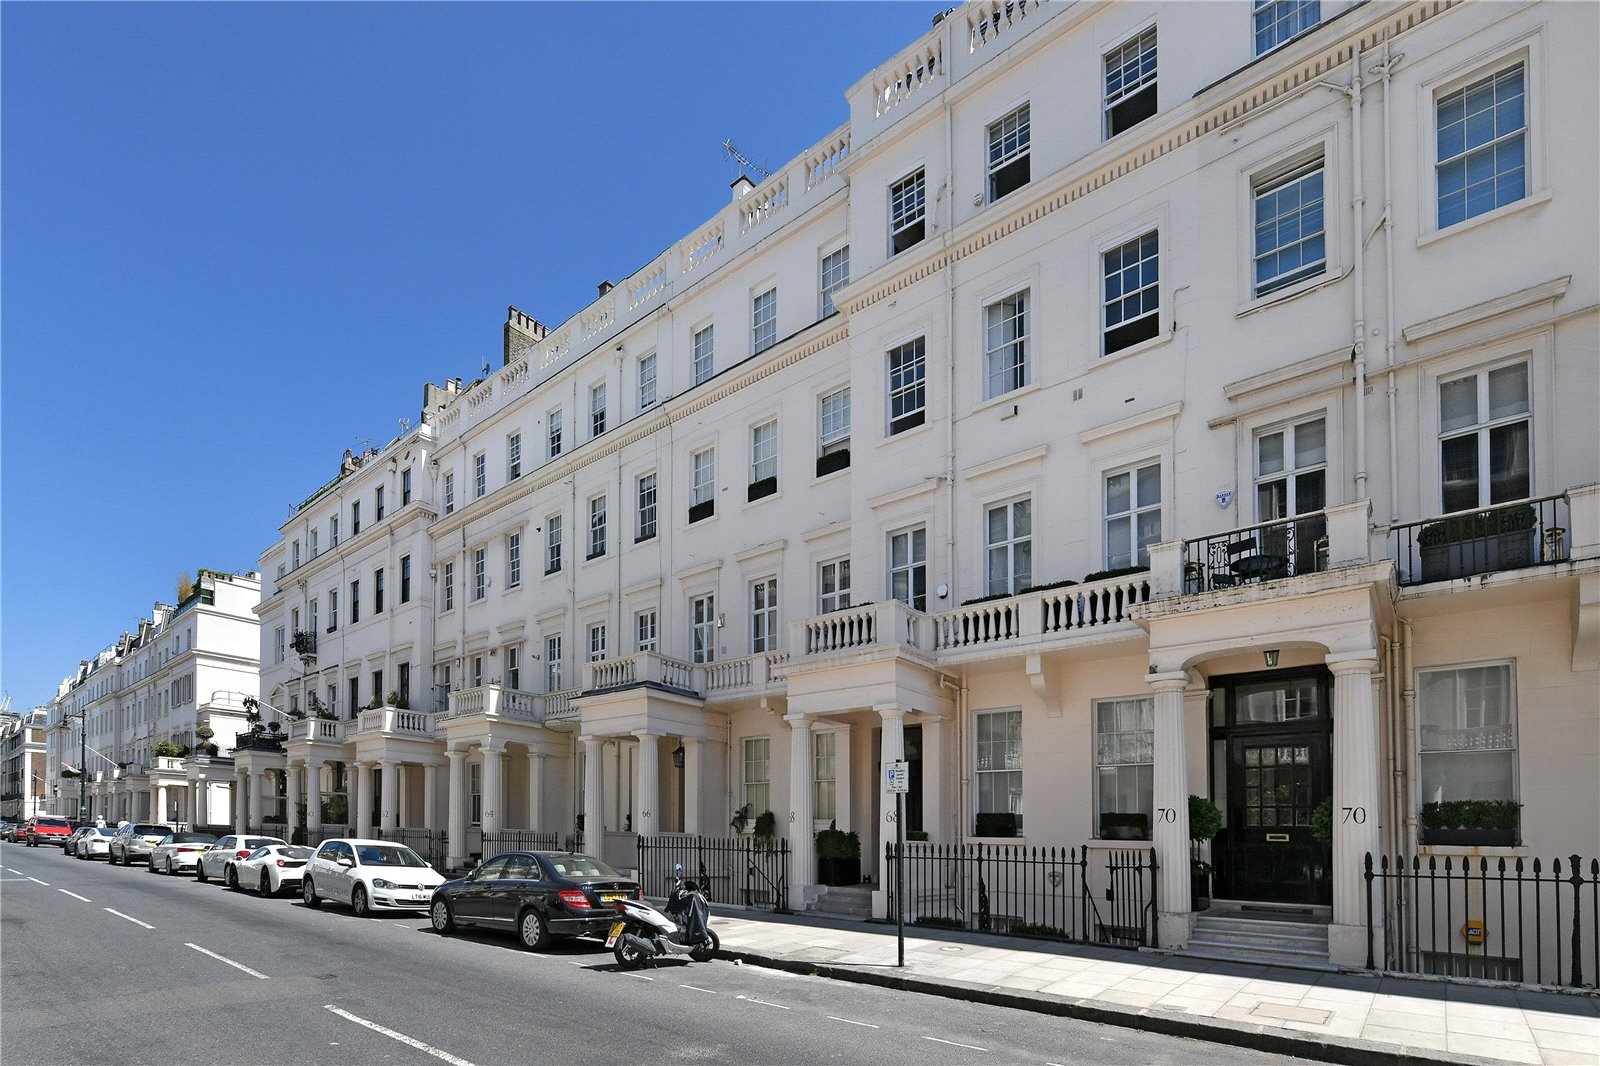 Apartment for Rent at Eaton Place, Belgravia, London, SW1X Eaton Place, Belgravia, London, SW1X